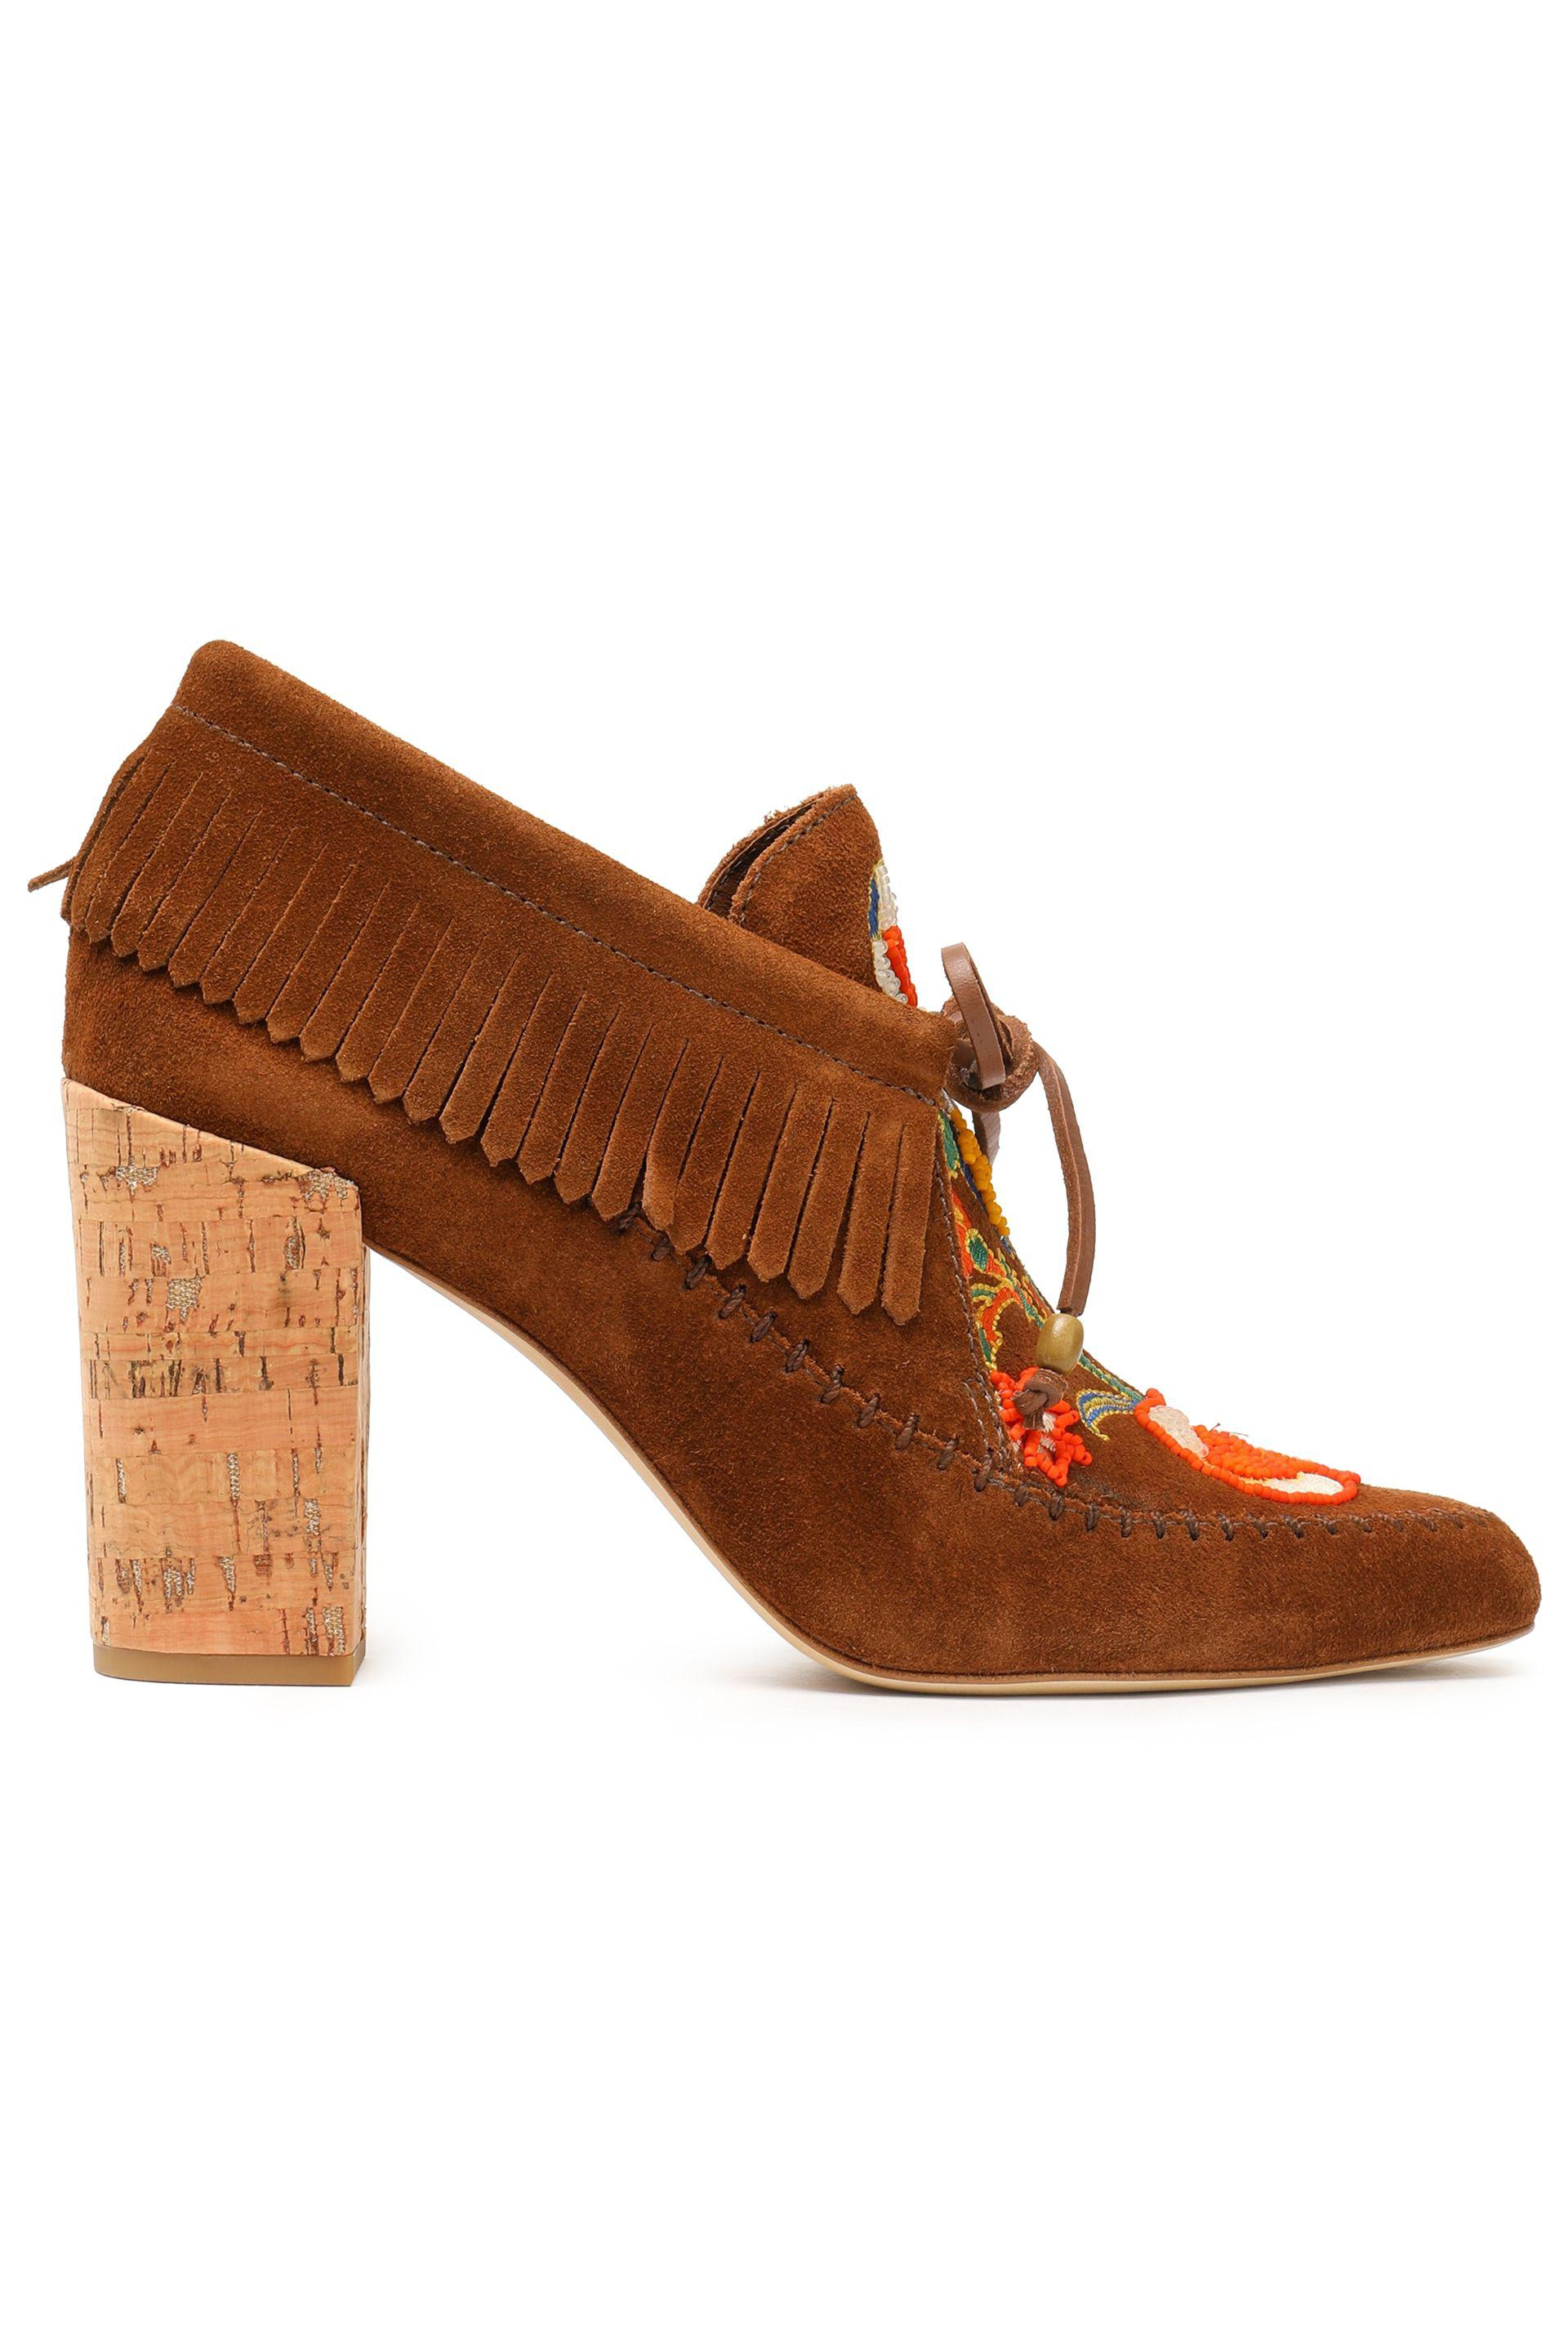 burch fringed suede ankle boots light brown in brown